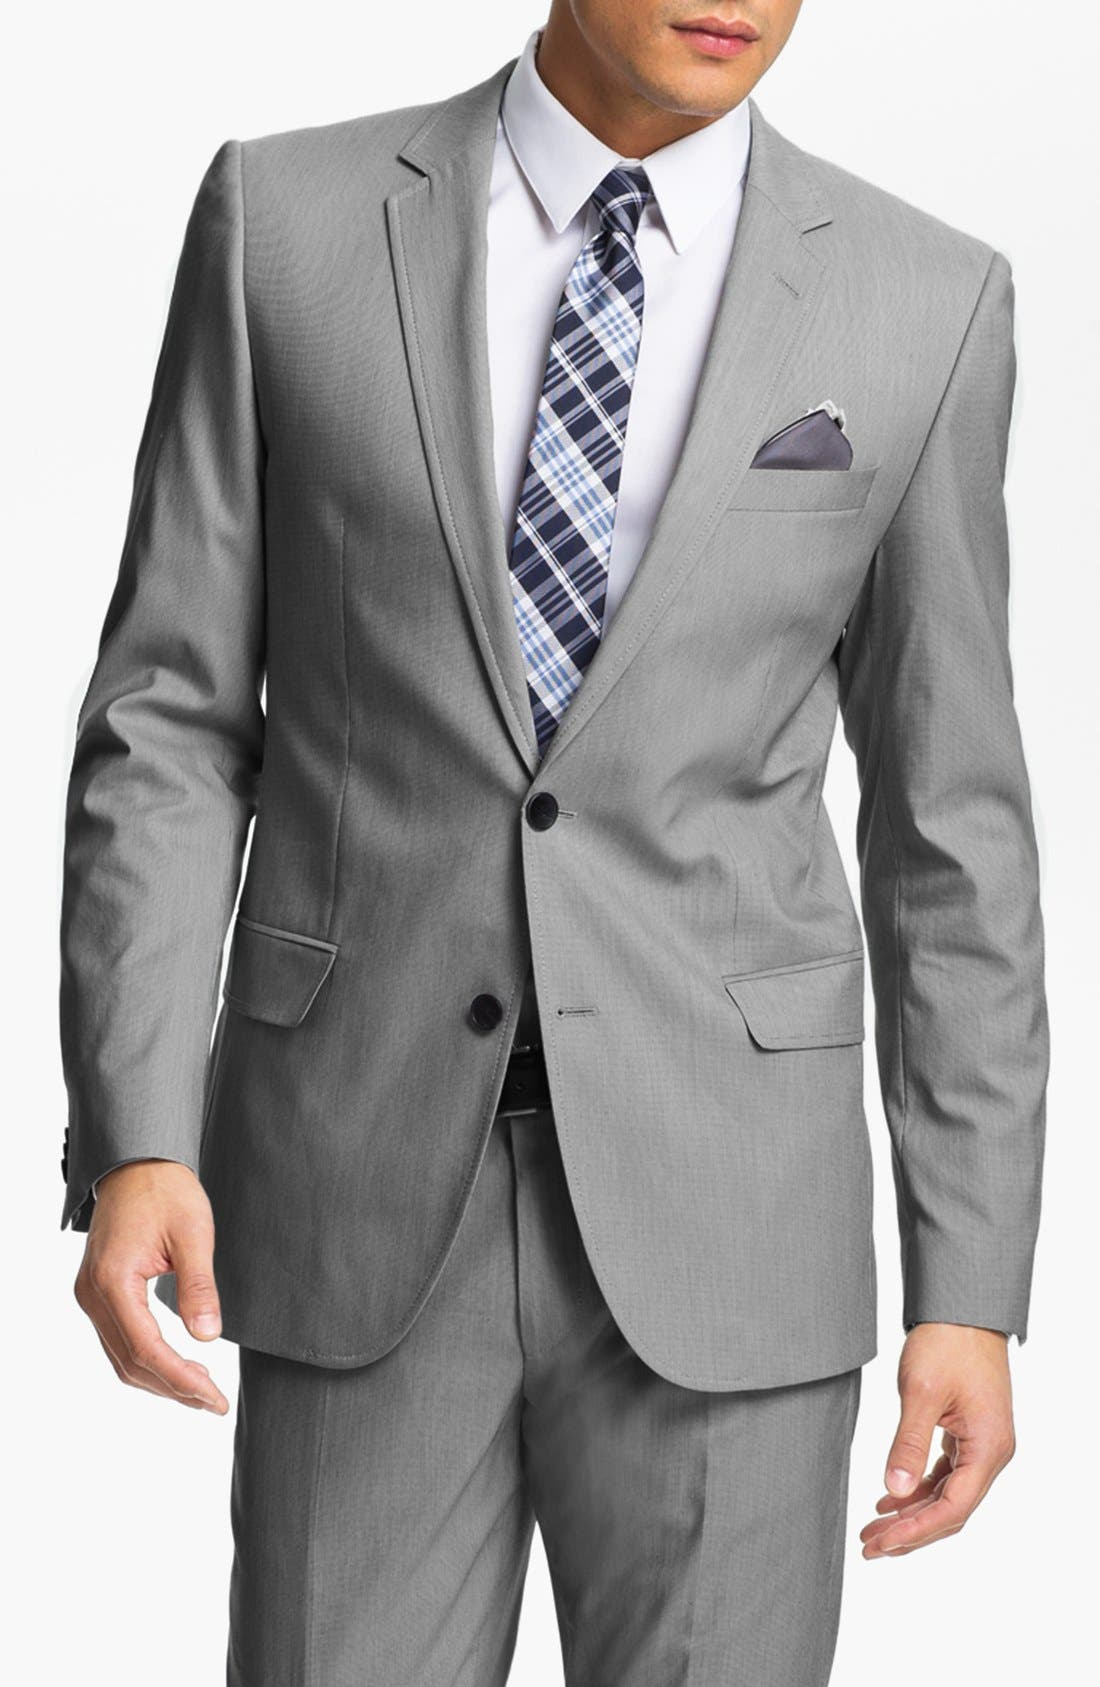 Alternate Image 1 Selected - HUGO 'Aiko/Heise' Trim Fit Suit